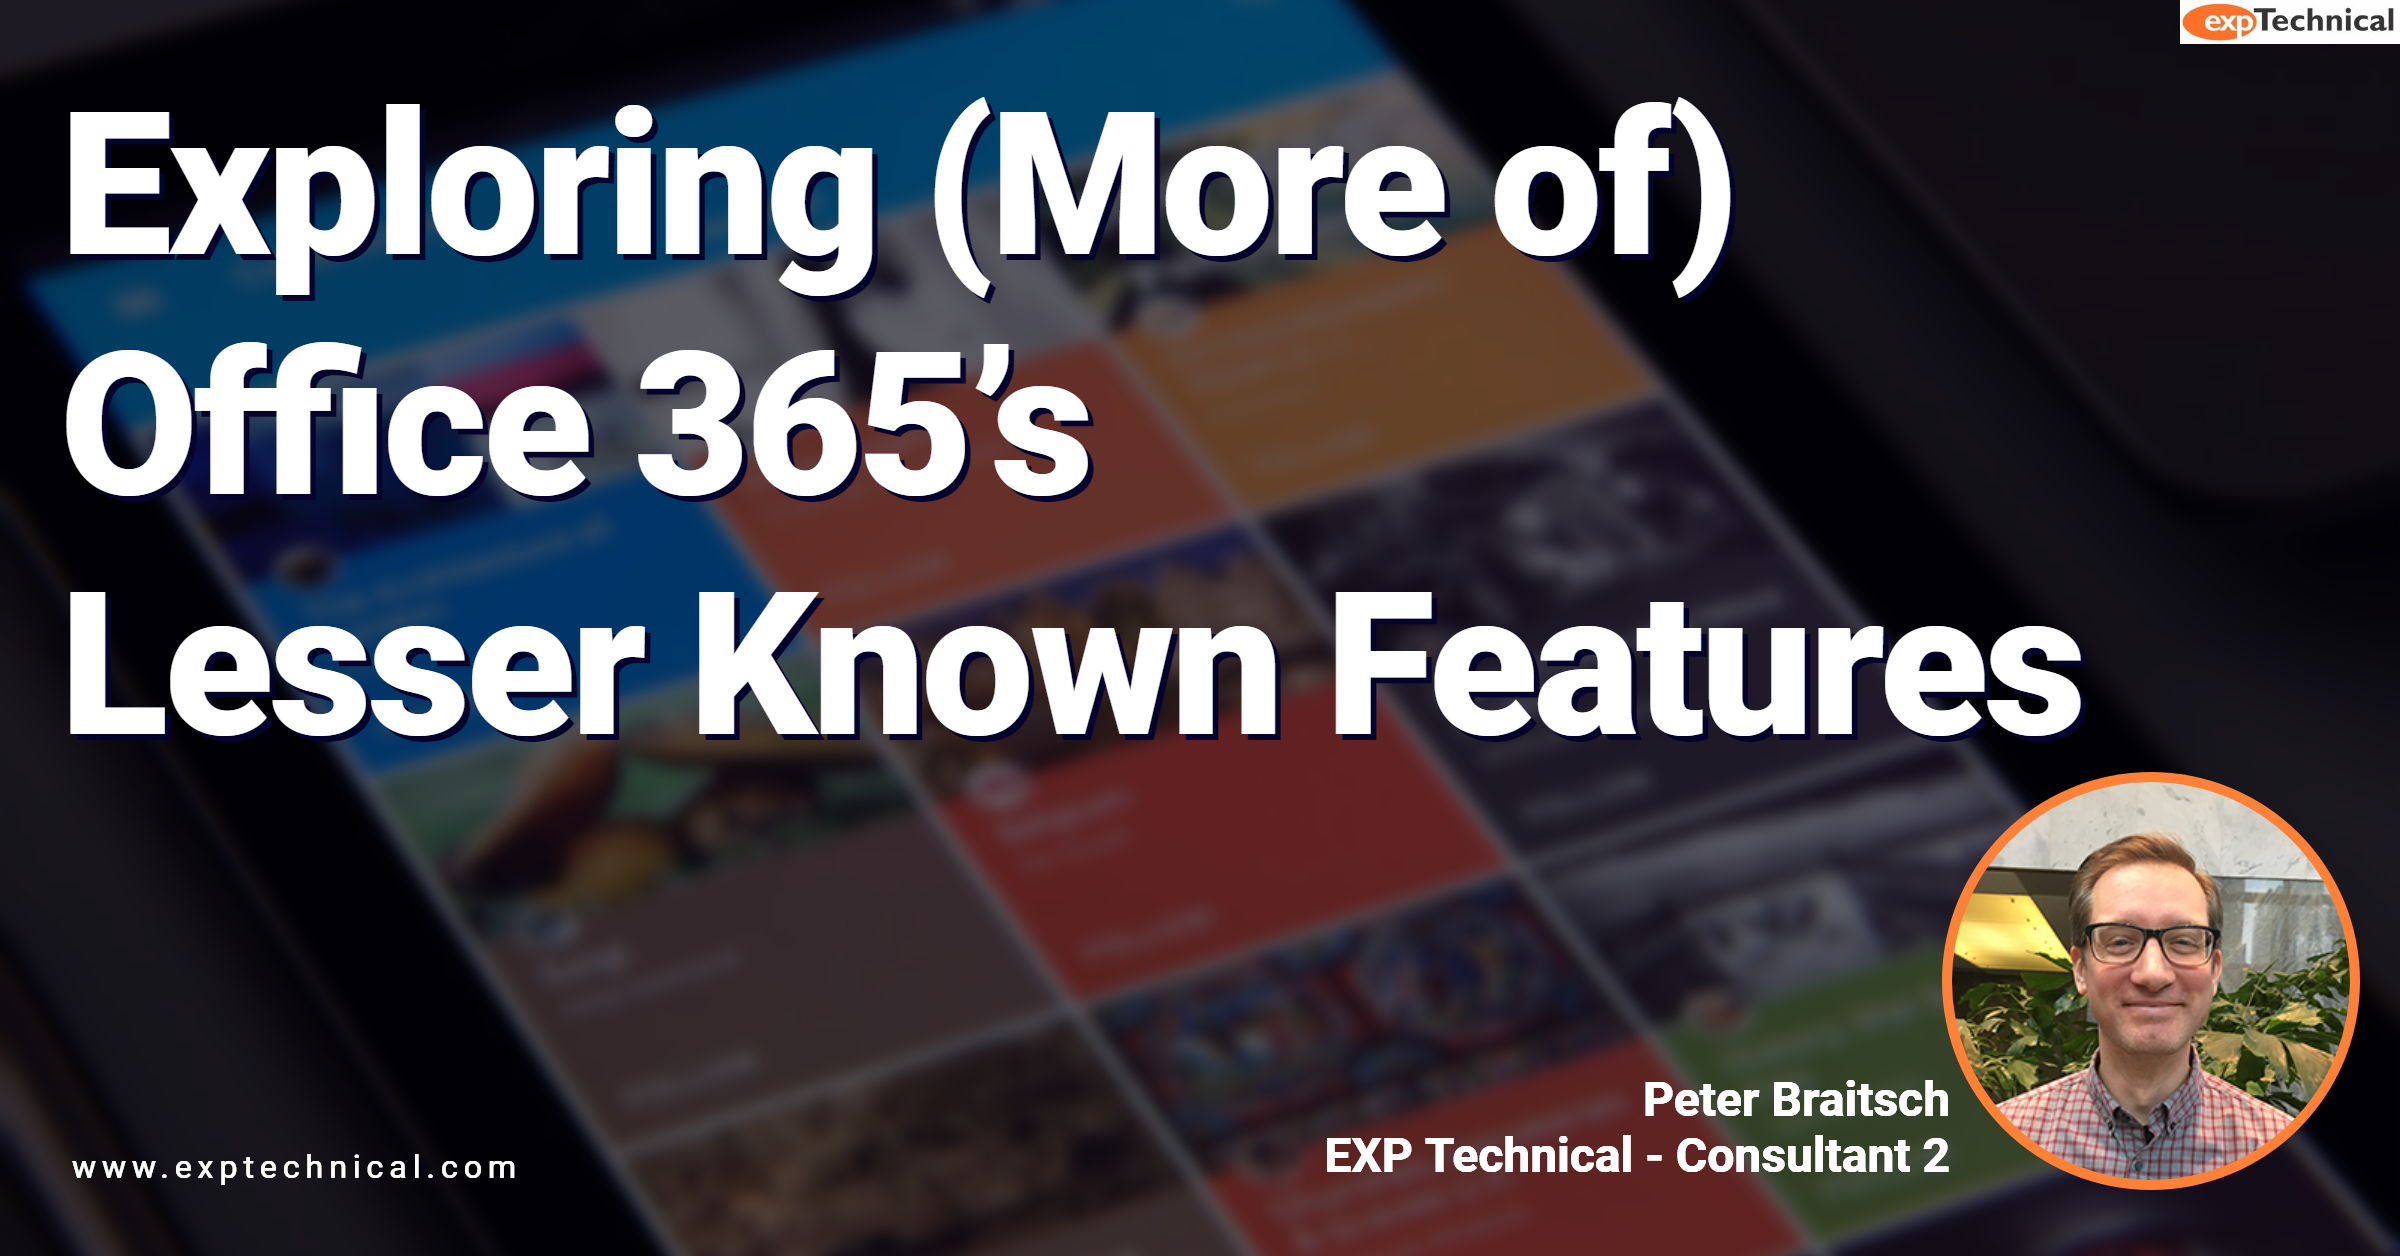 Office 365 Lesser Known Features